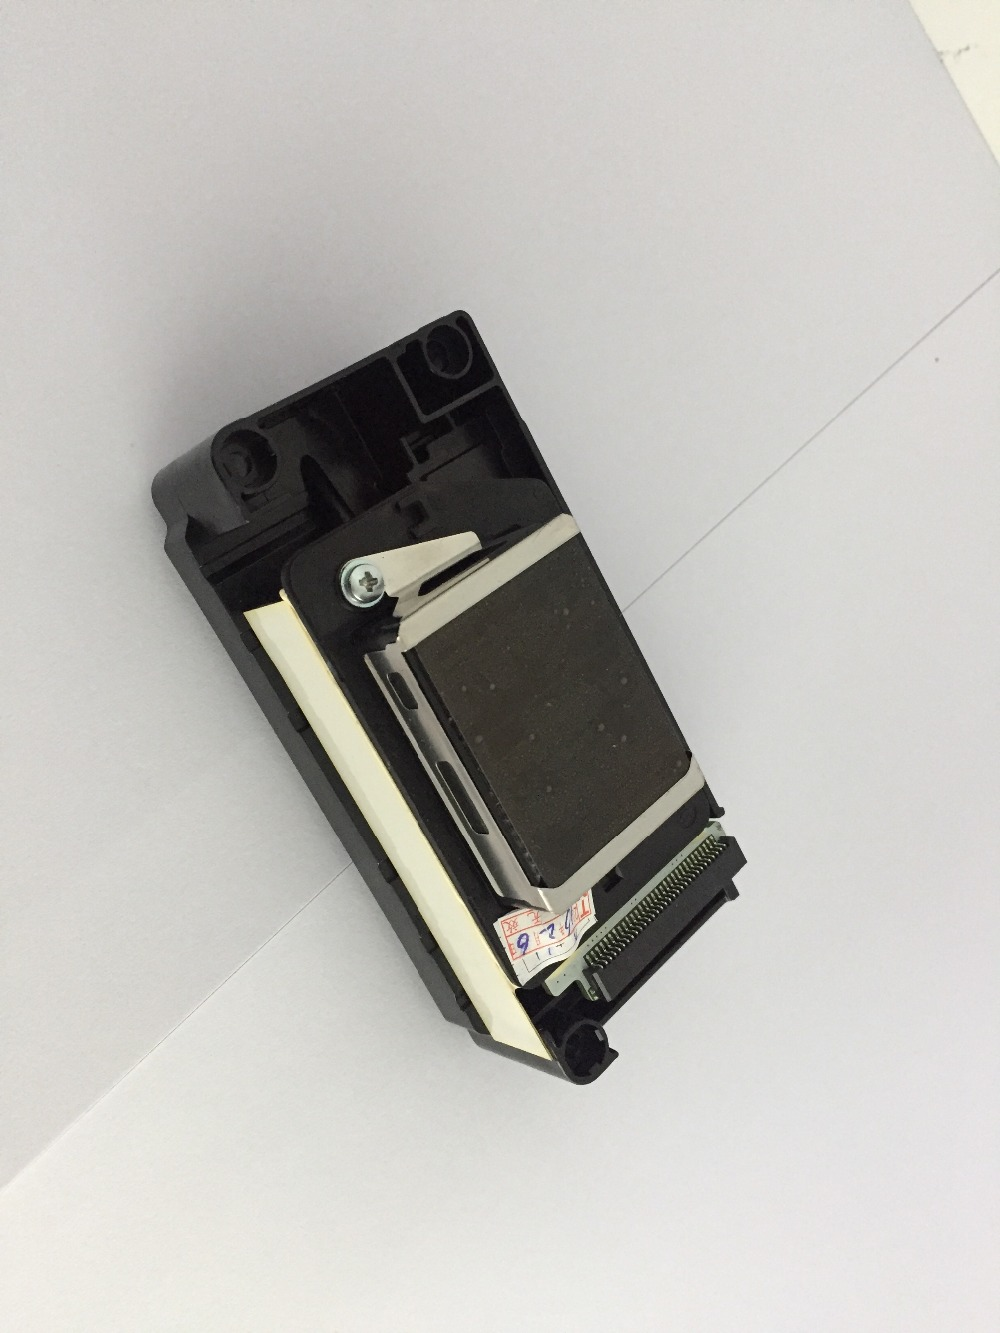 (F152000) Original DX5 Water-Based print head for Epson R800 printer printhead